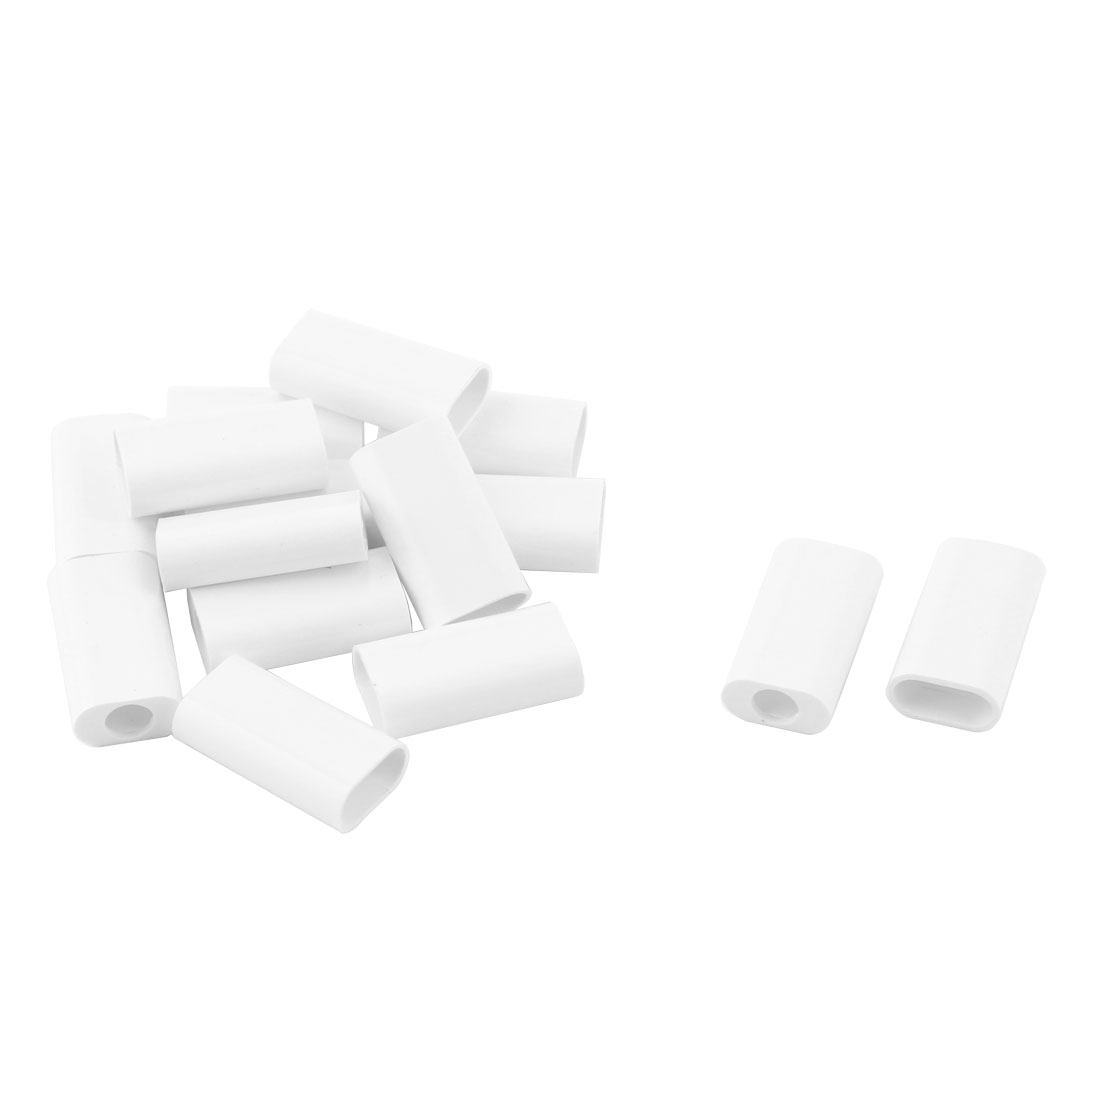 Phone Plastic Round Edge USB Port Protective DIY USB Cover Shell White 15pcs for Iphone 5